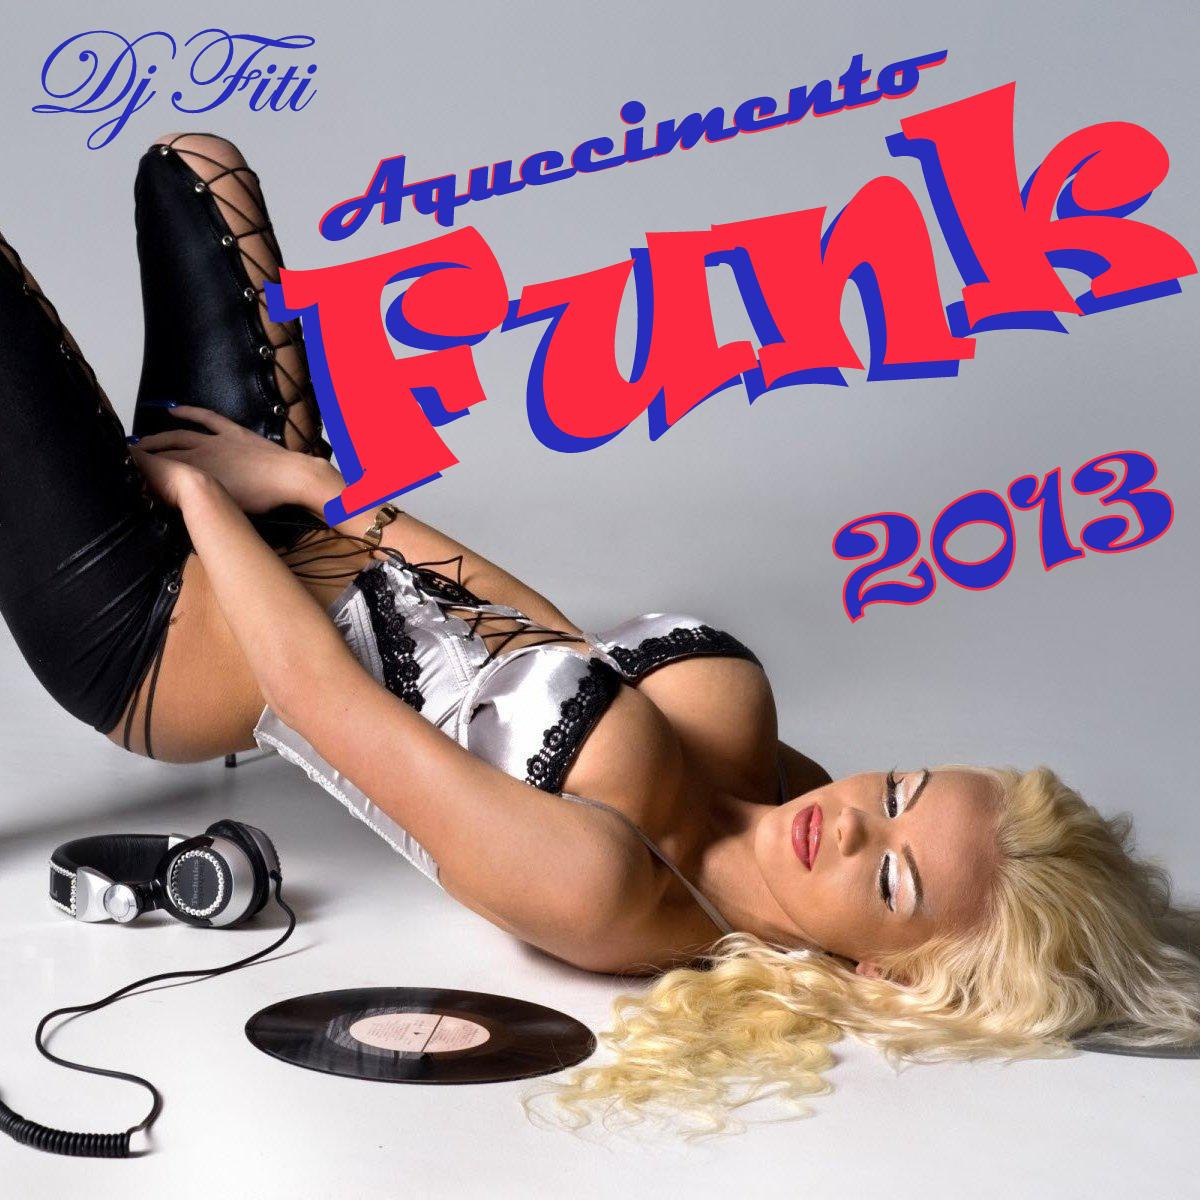 Aquecimento Funk 2013